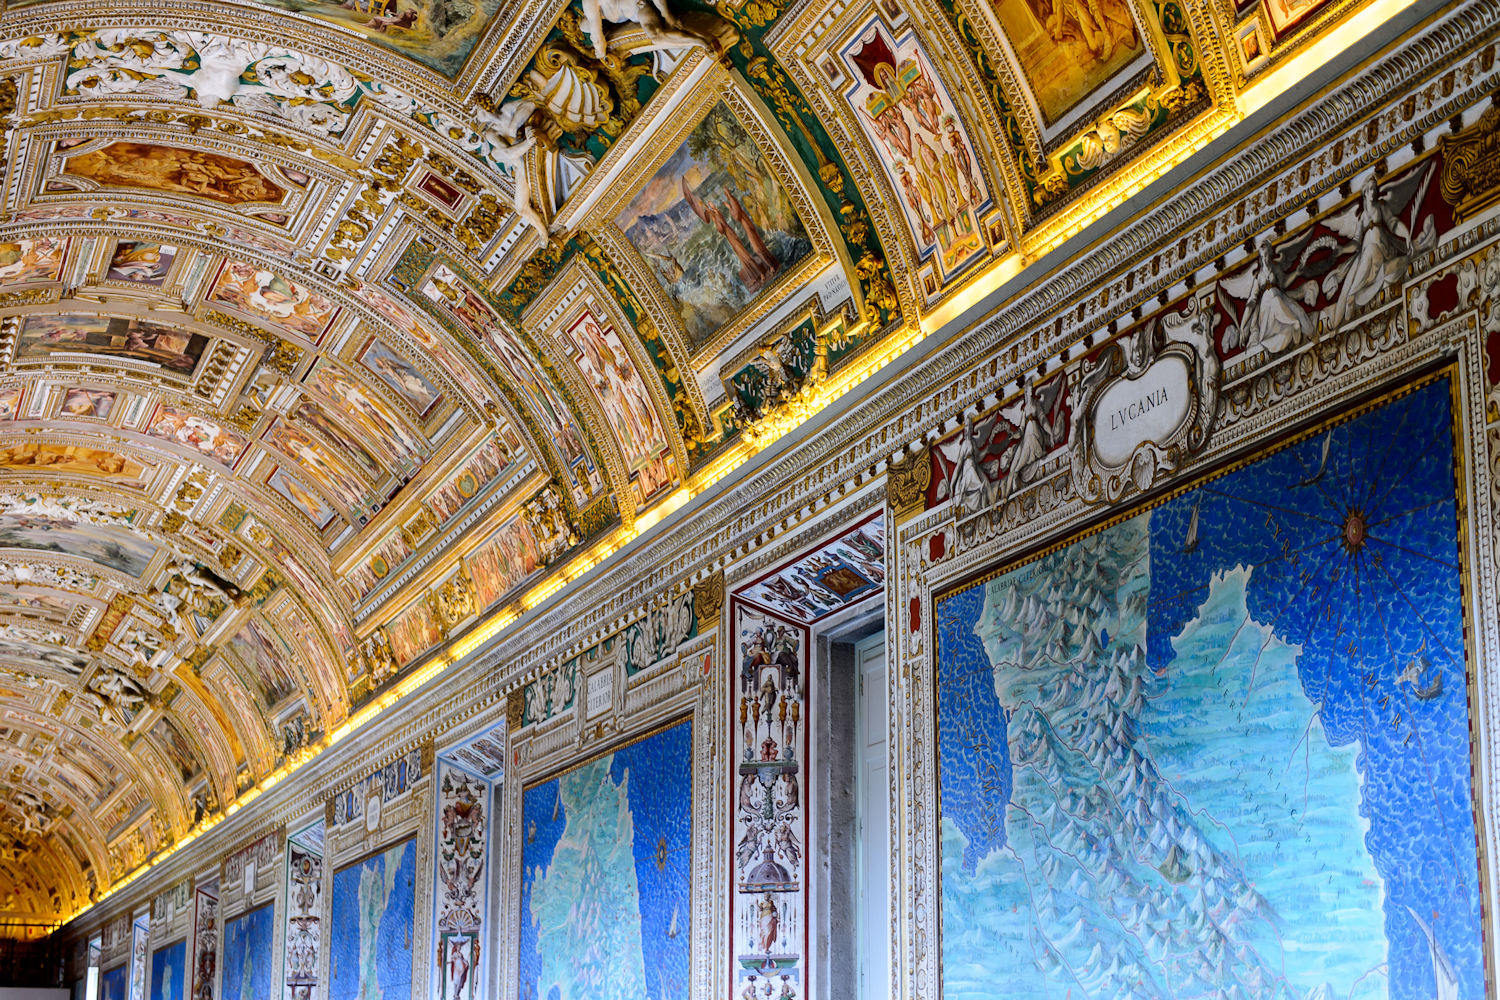 Gallery of Maps, Vatican Museum